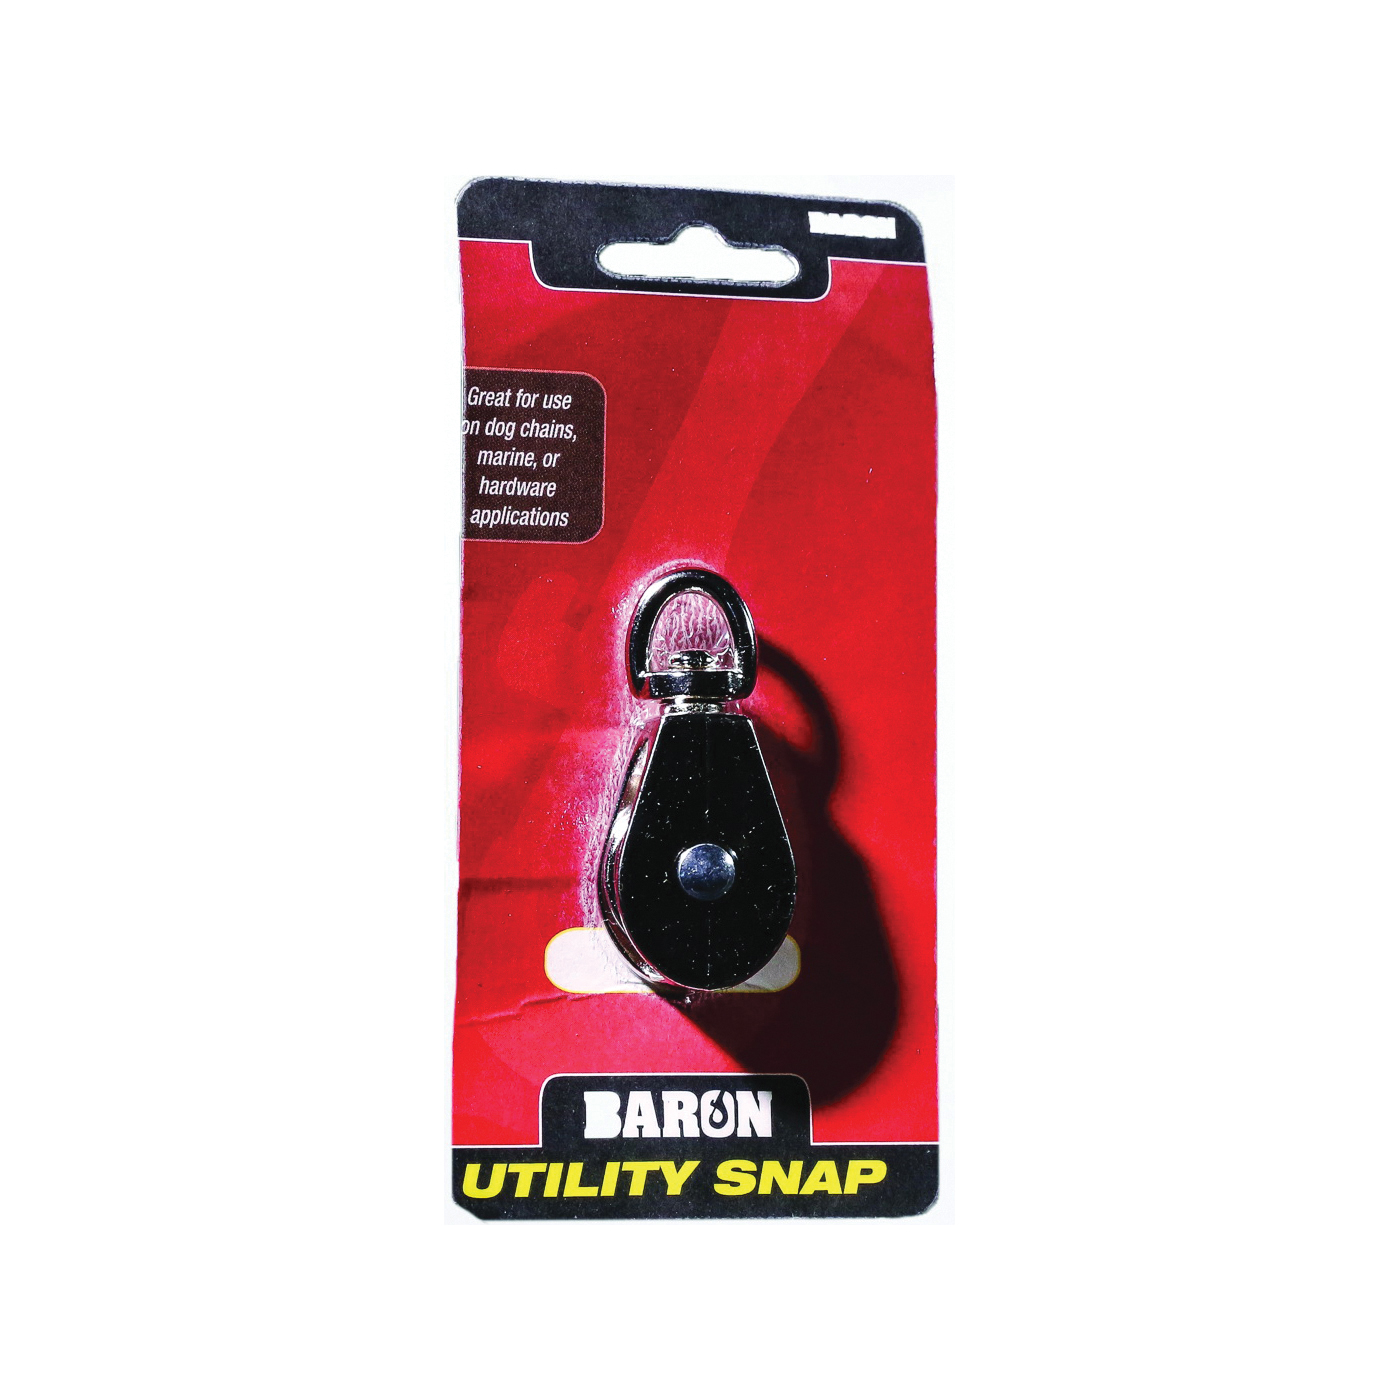 Picture of BARON C-0713ZD-1/2 Single Rope Pulley, 5/32 in Rope, 8 lb Working Load, 1/2 in Sheave, Nickel